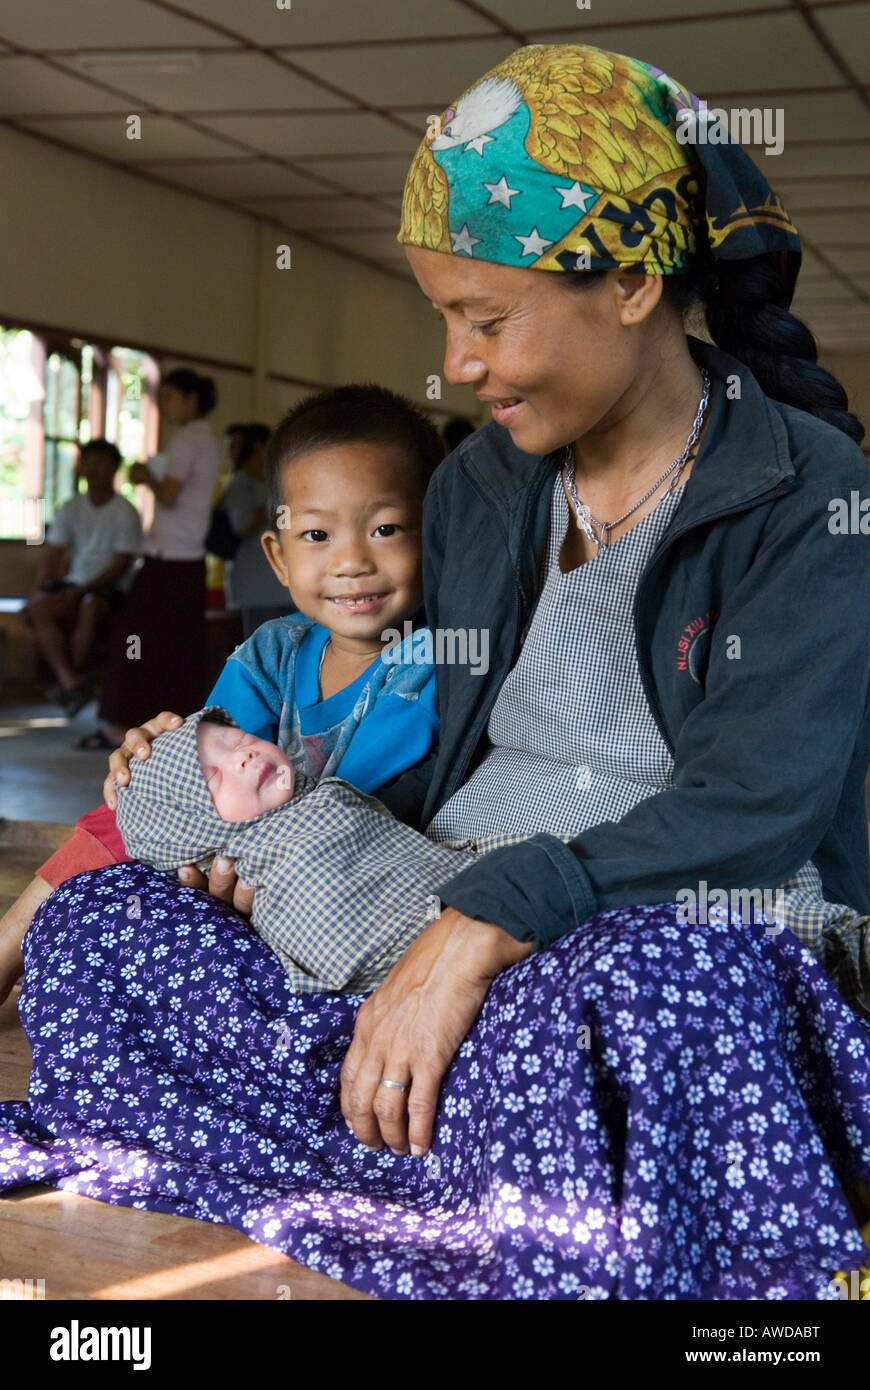 Mother with newly born baby and son, Kou Kou Clinic, Swe Kou Kou village, IDP-Area bordering Thailand near Maesot, - Stock Image